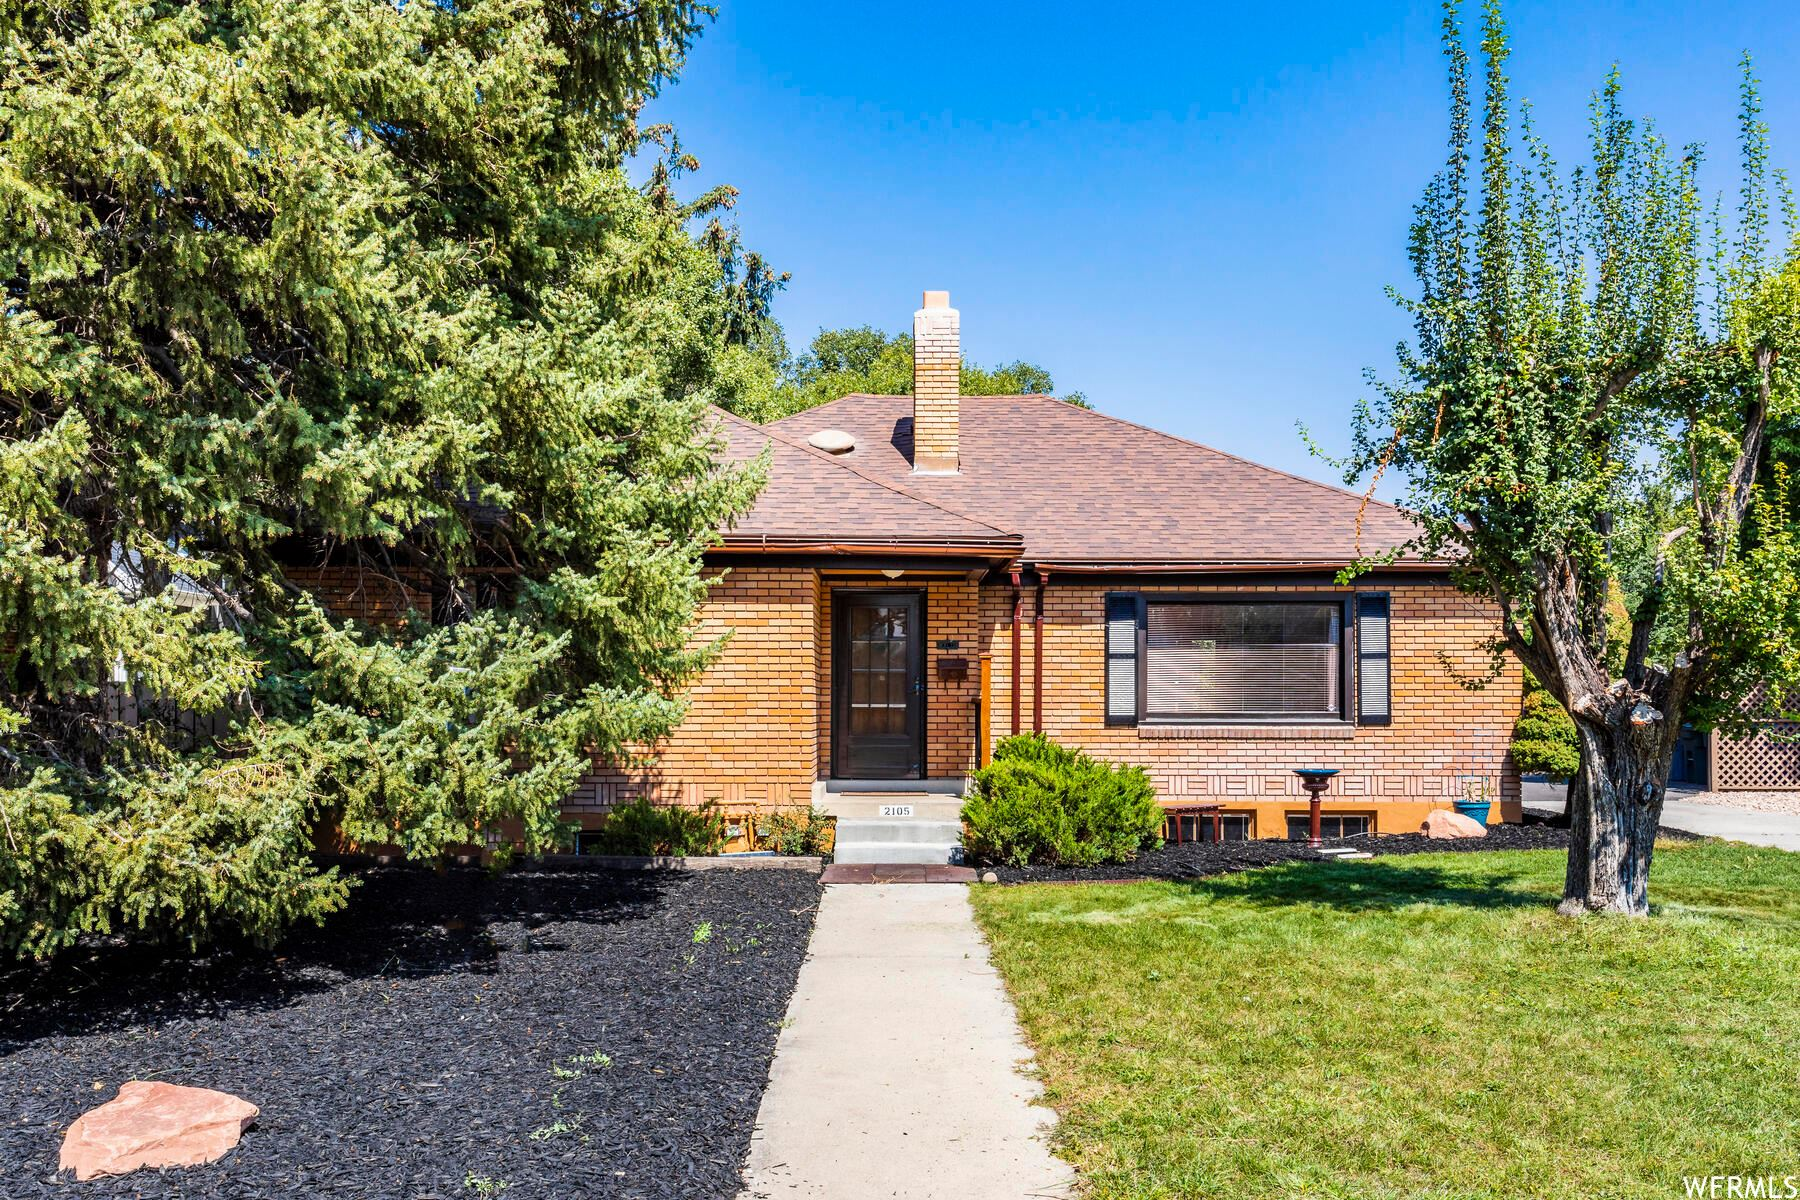 Photo of 2105 E 2700 S, Salt Lake City, UT 84109 (MLS # 1714013)